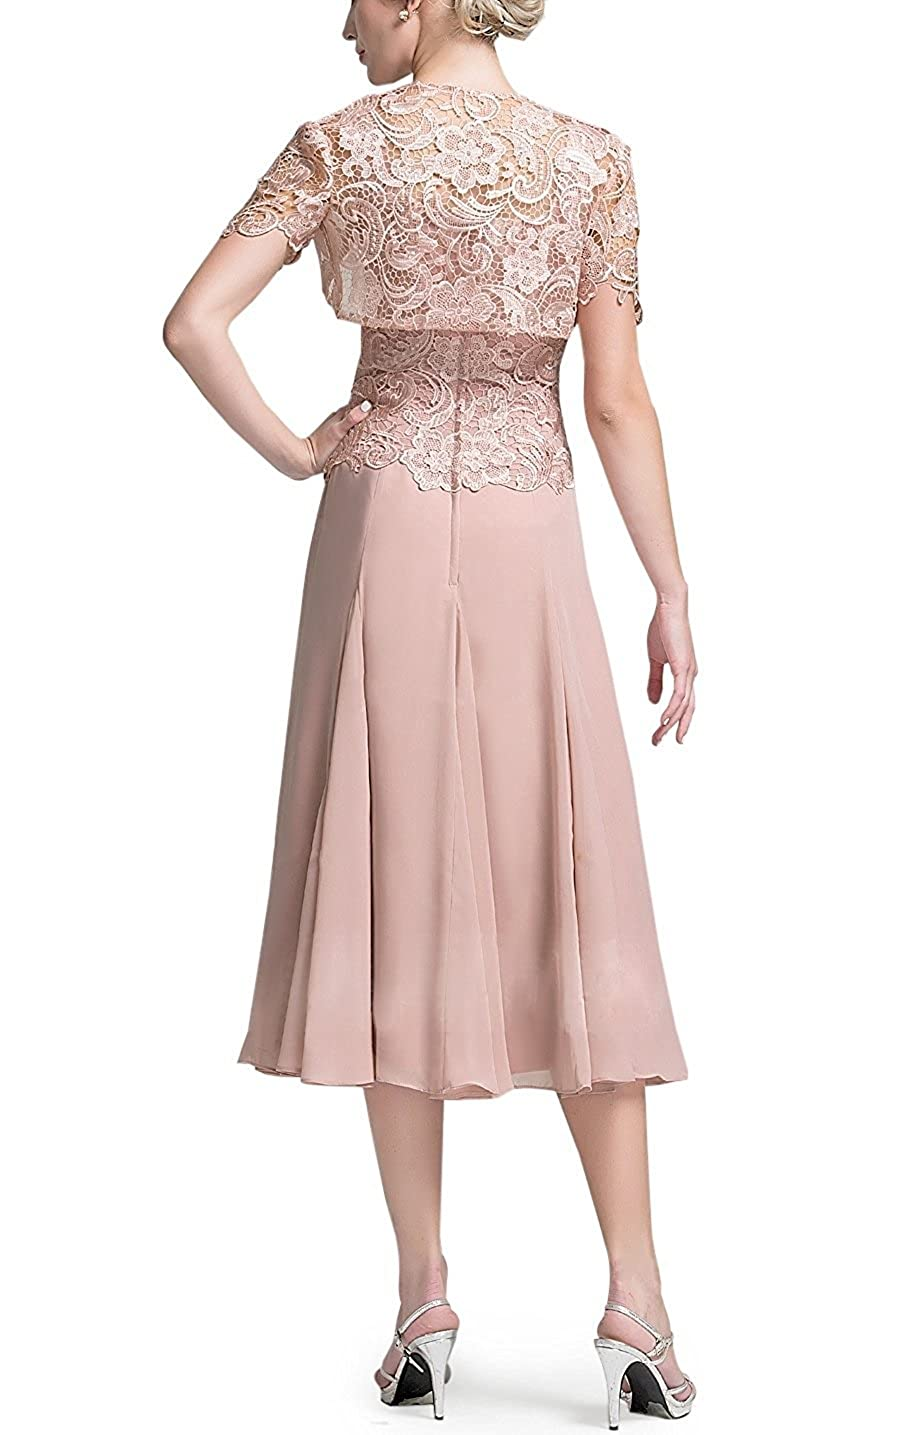 127da1dc6aa DINGZAN Chic Tea Length Bride Mother Dresses with Short Lace Sleeves Jacket  at Amazon Women s Clothing store